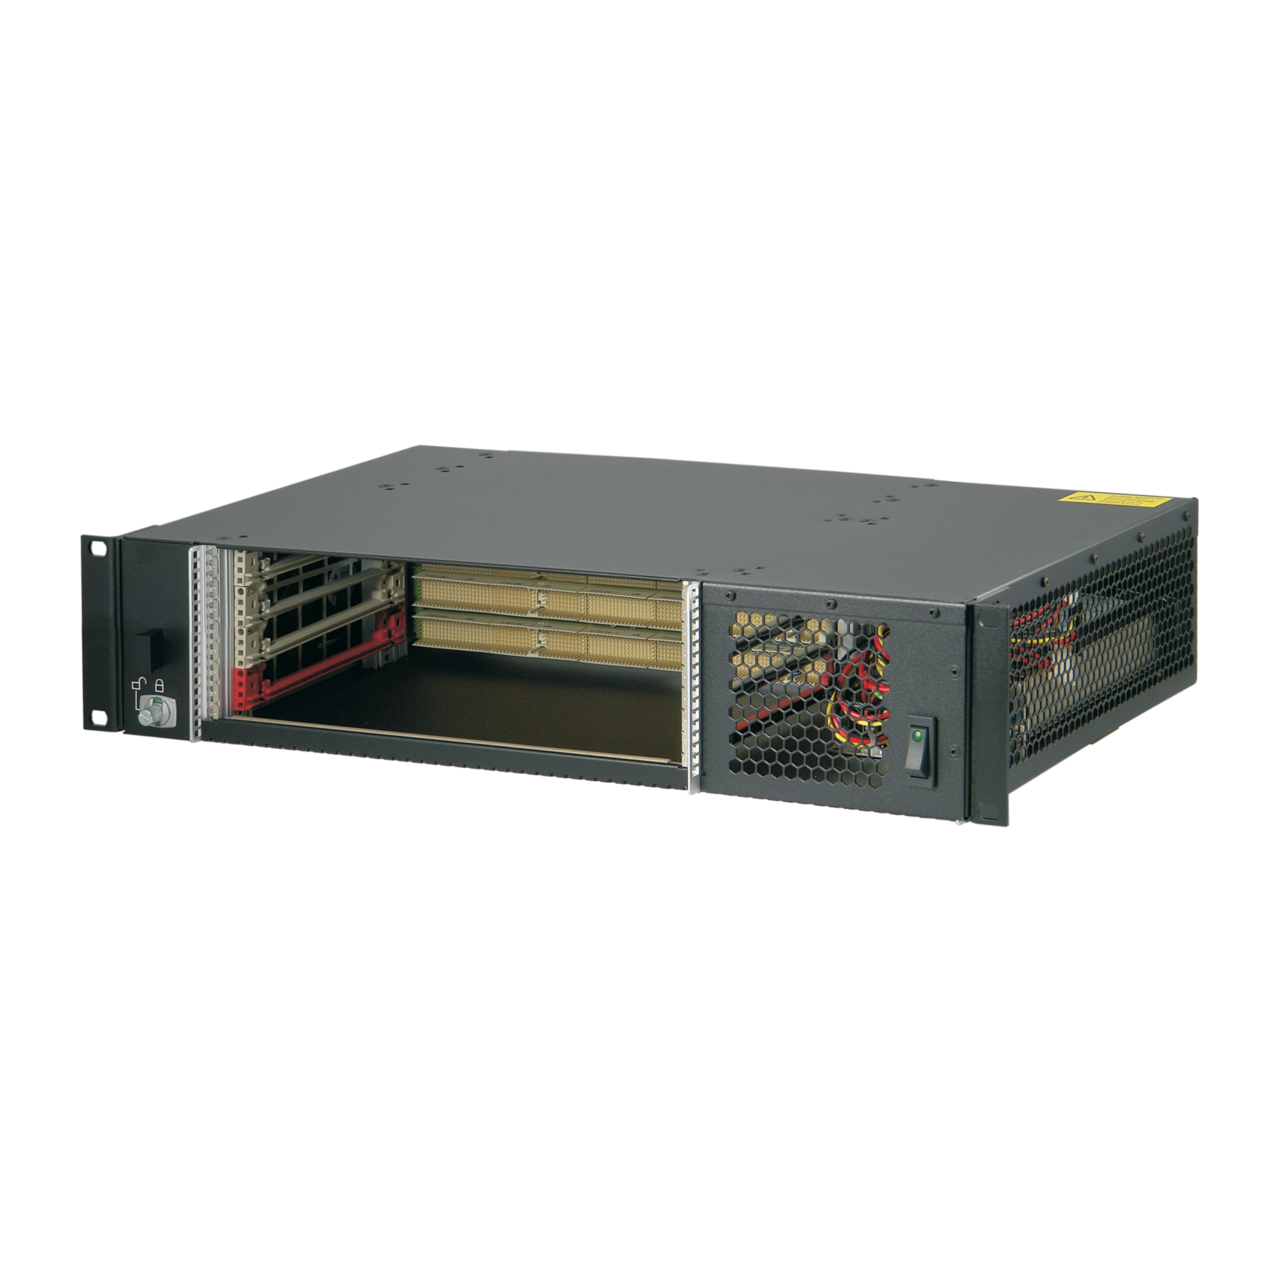 Image for CompactPCI 2 U, 4 slot, with rear I/O and ATX power supply from nVent SCHROFF | Europe, Middle East, Africa and India